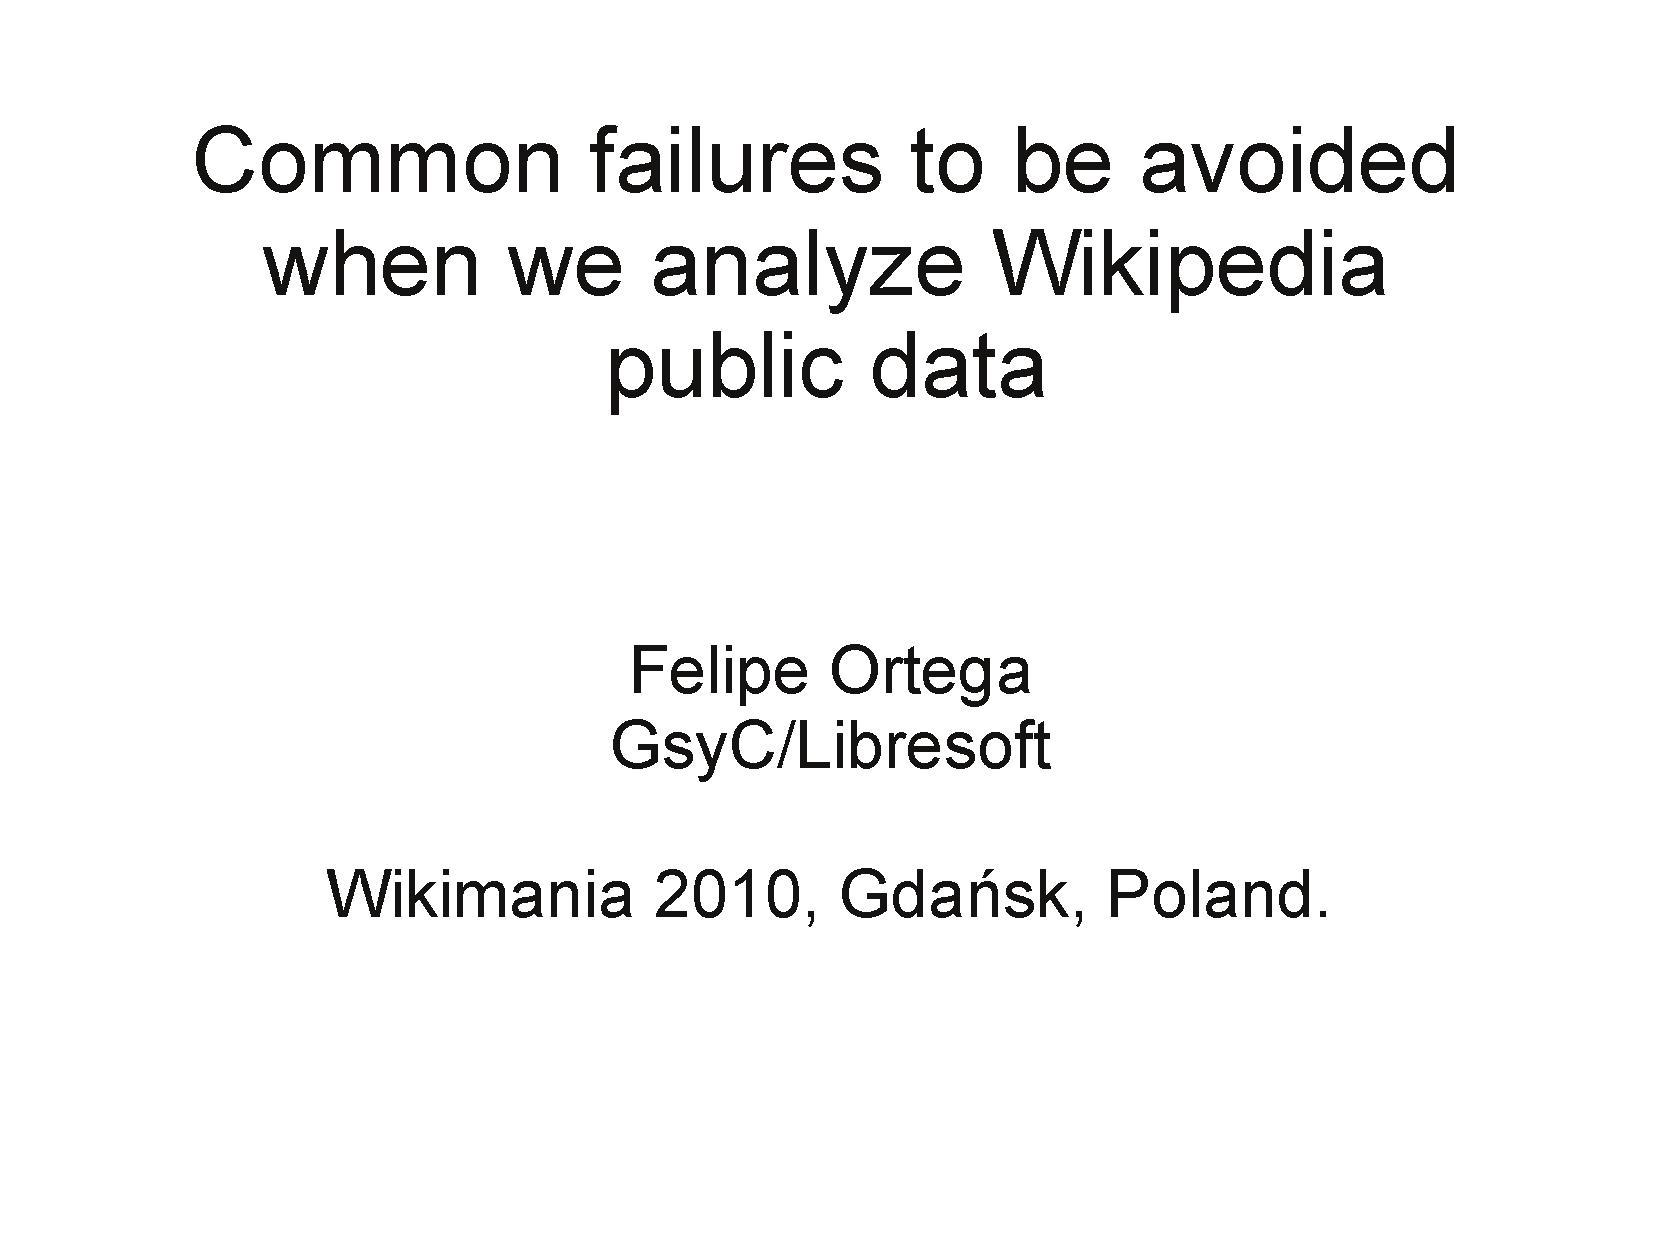 Mining Wikipedia public data, Wikimania 2010.pdf